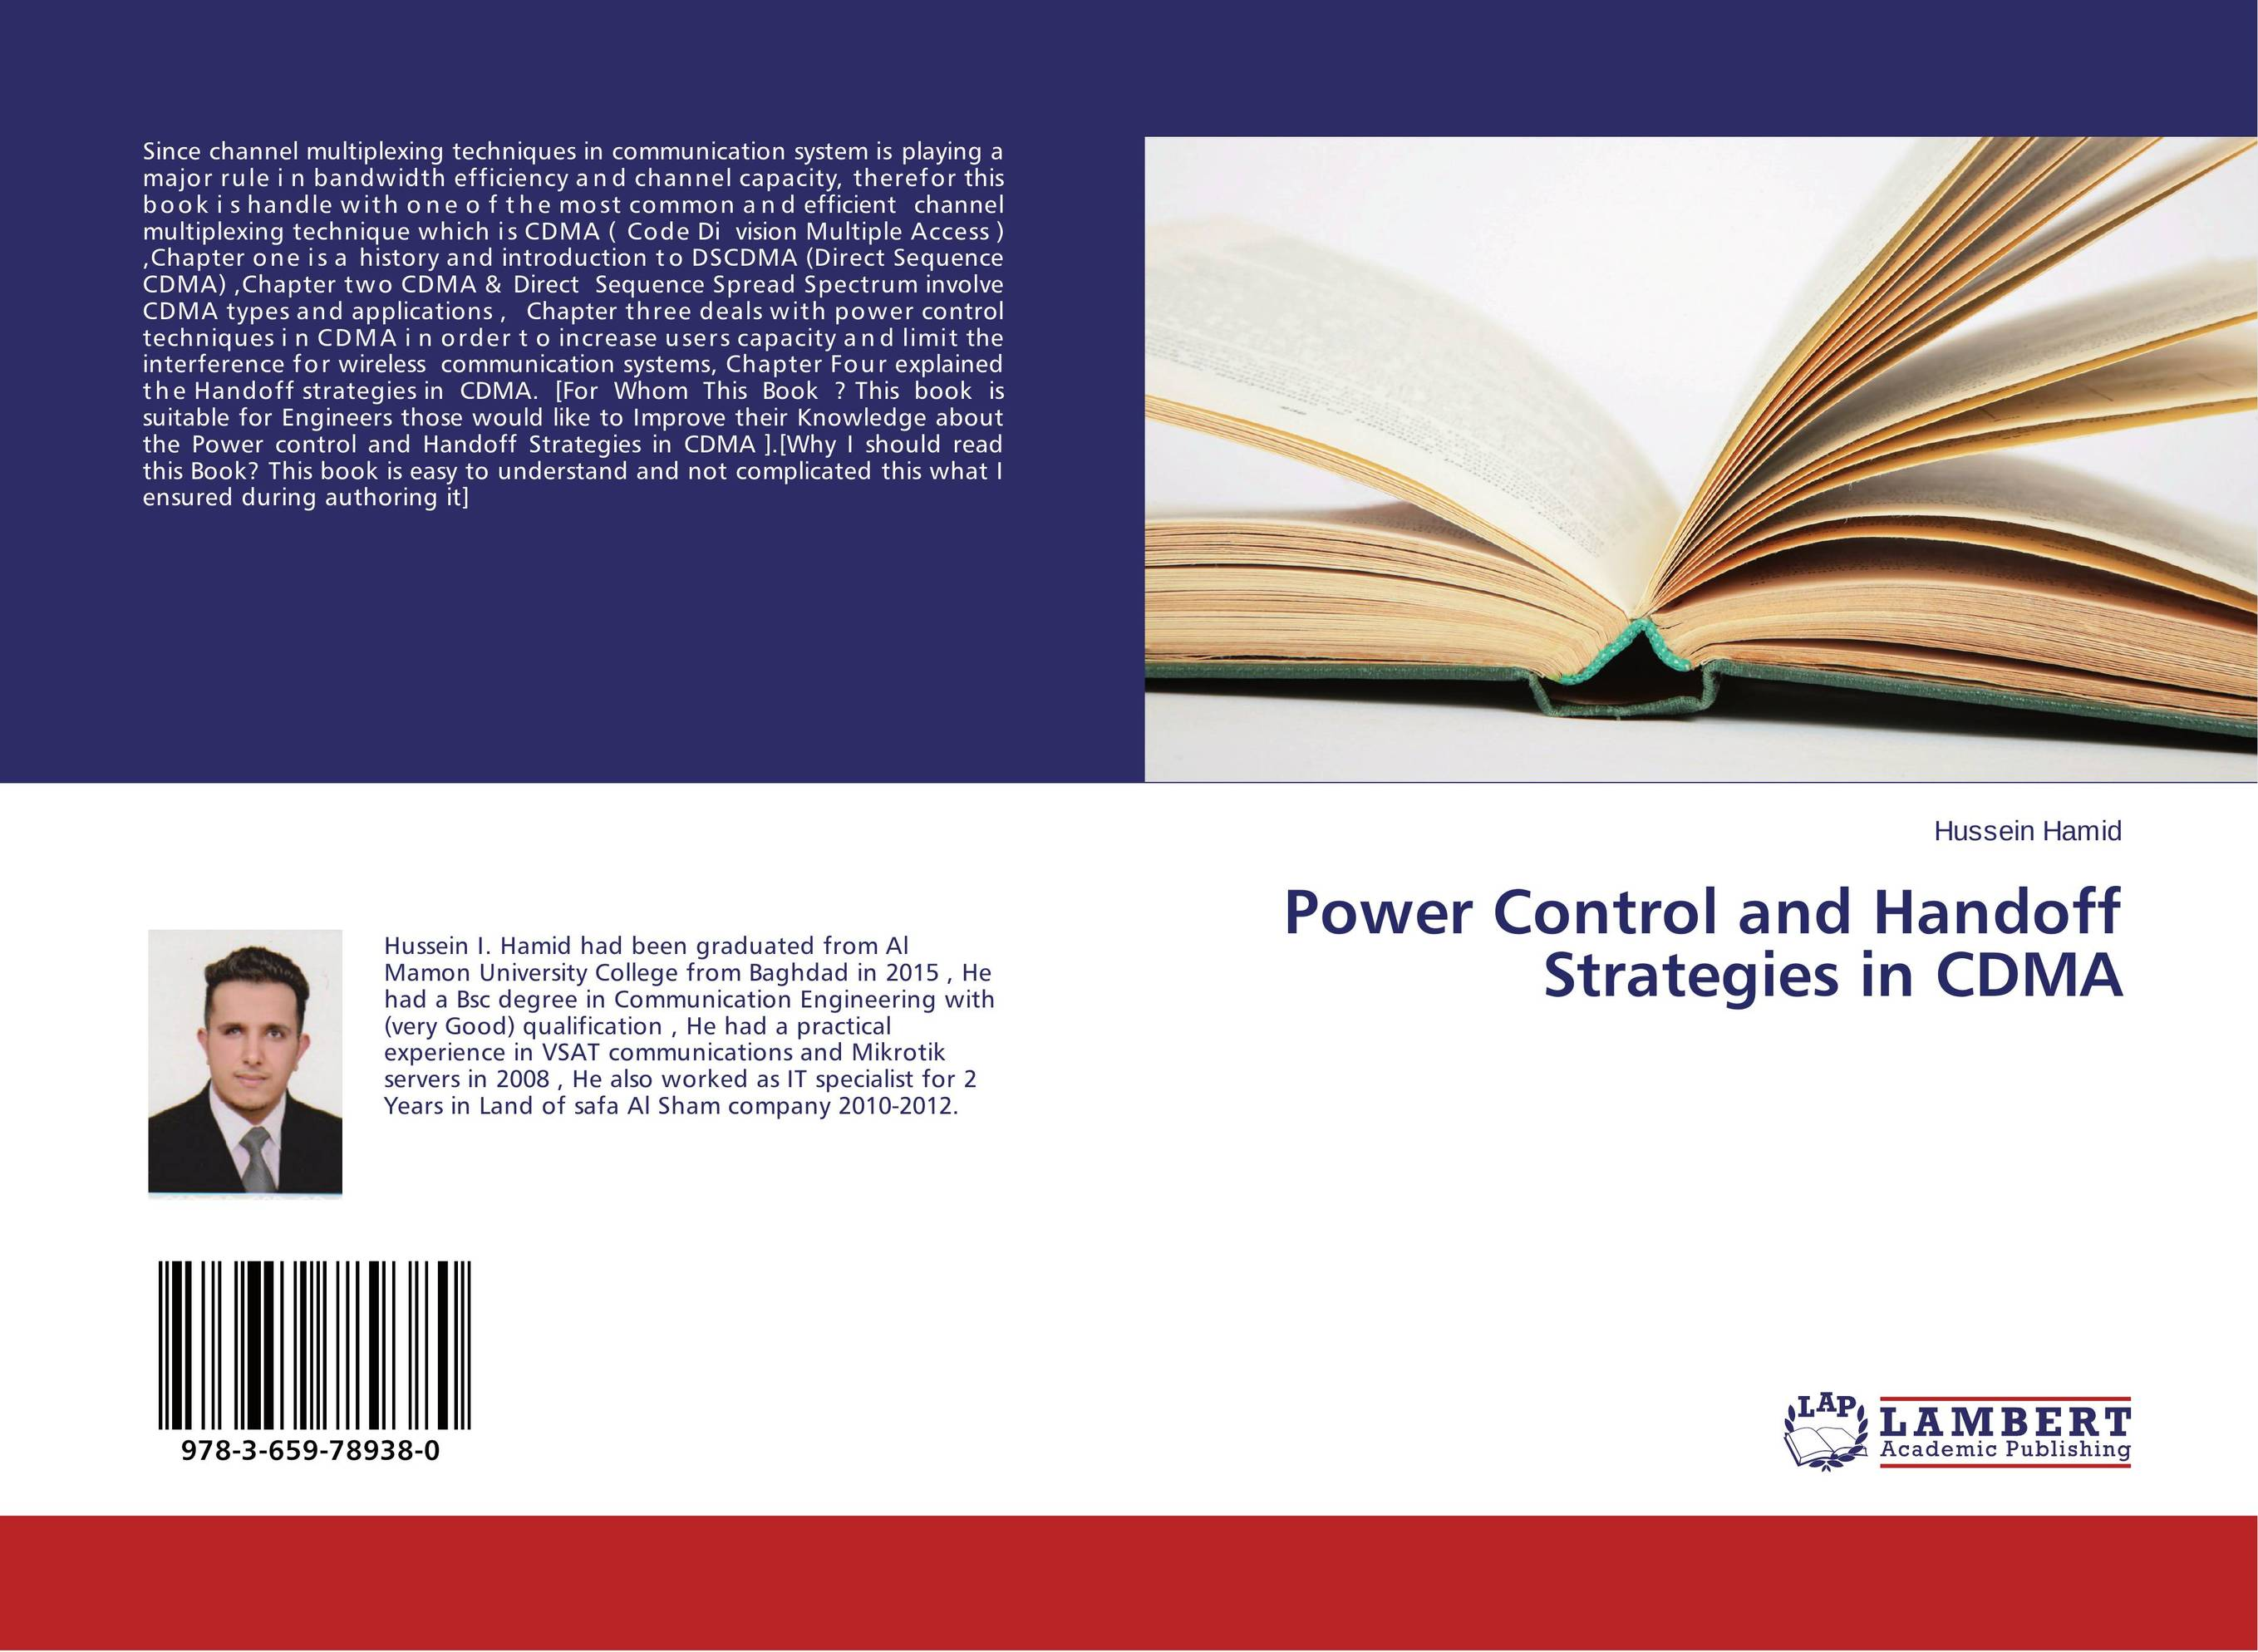 Power Control and Handoff Strategies in CDMA vertical handoff decision strategies